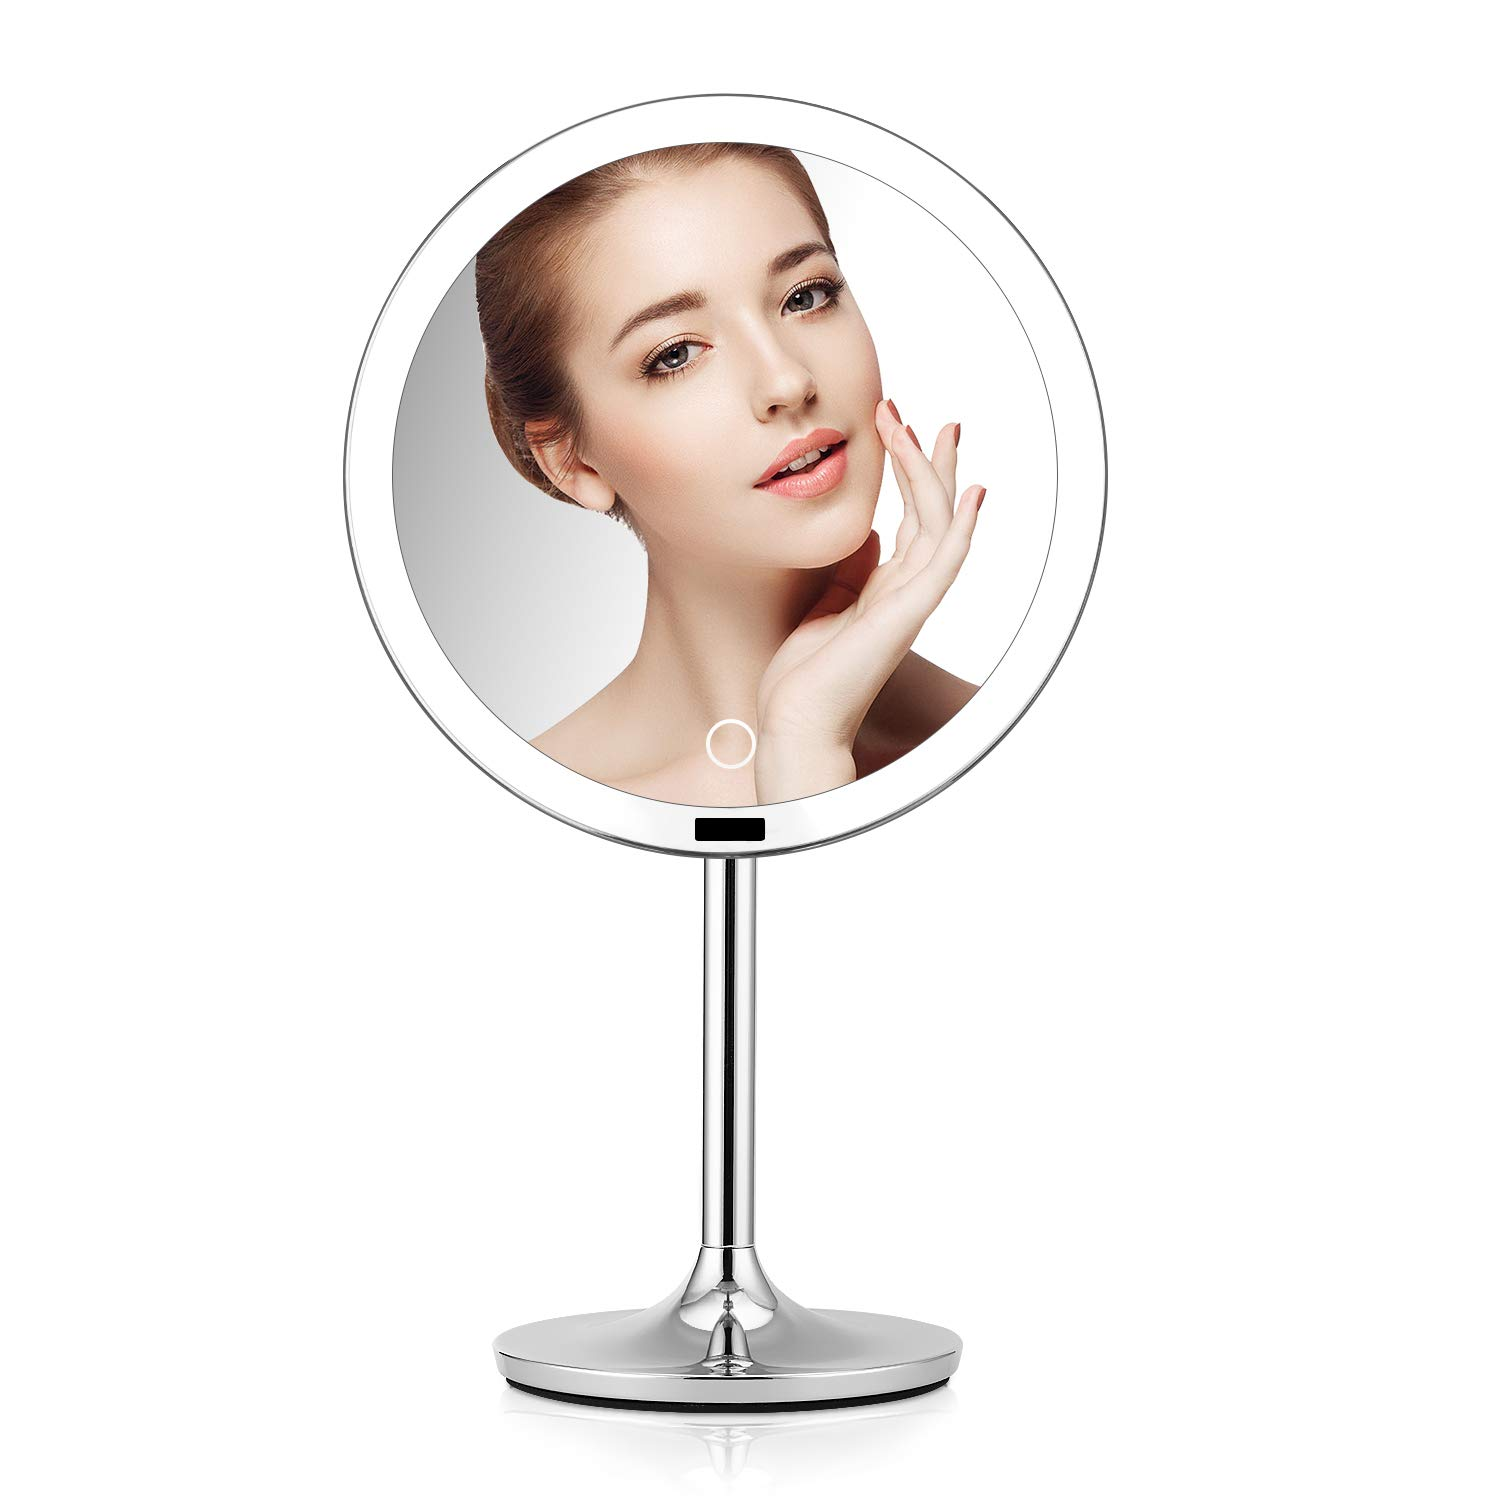 "BRIGHTINWD 8.5"" Lighted Makeup Mirror with Sensor, Makeup Vanity Mirror with Lights, Brightness Control, Rechargeable and Cordless, Polished Chrome Finish(No Magnification)"